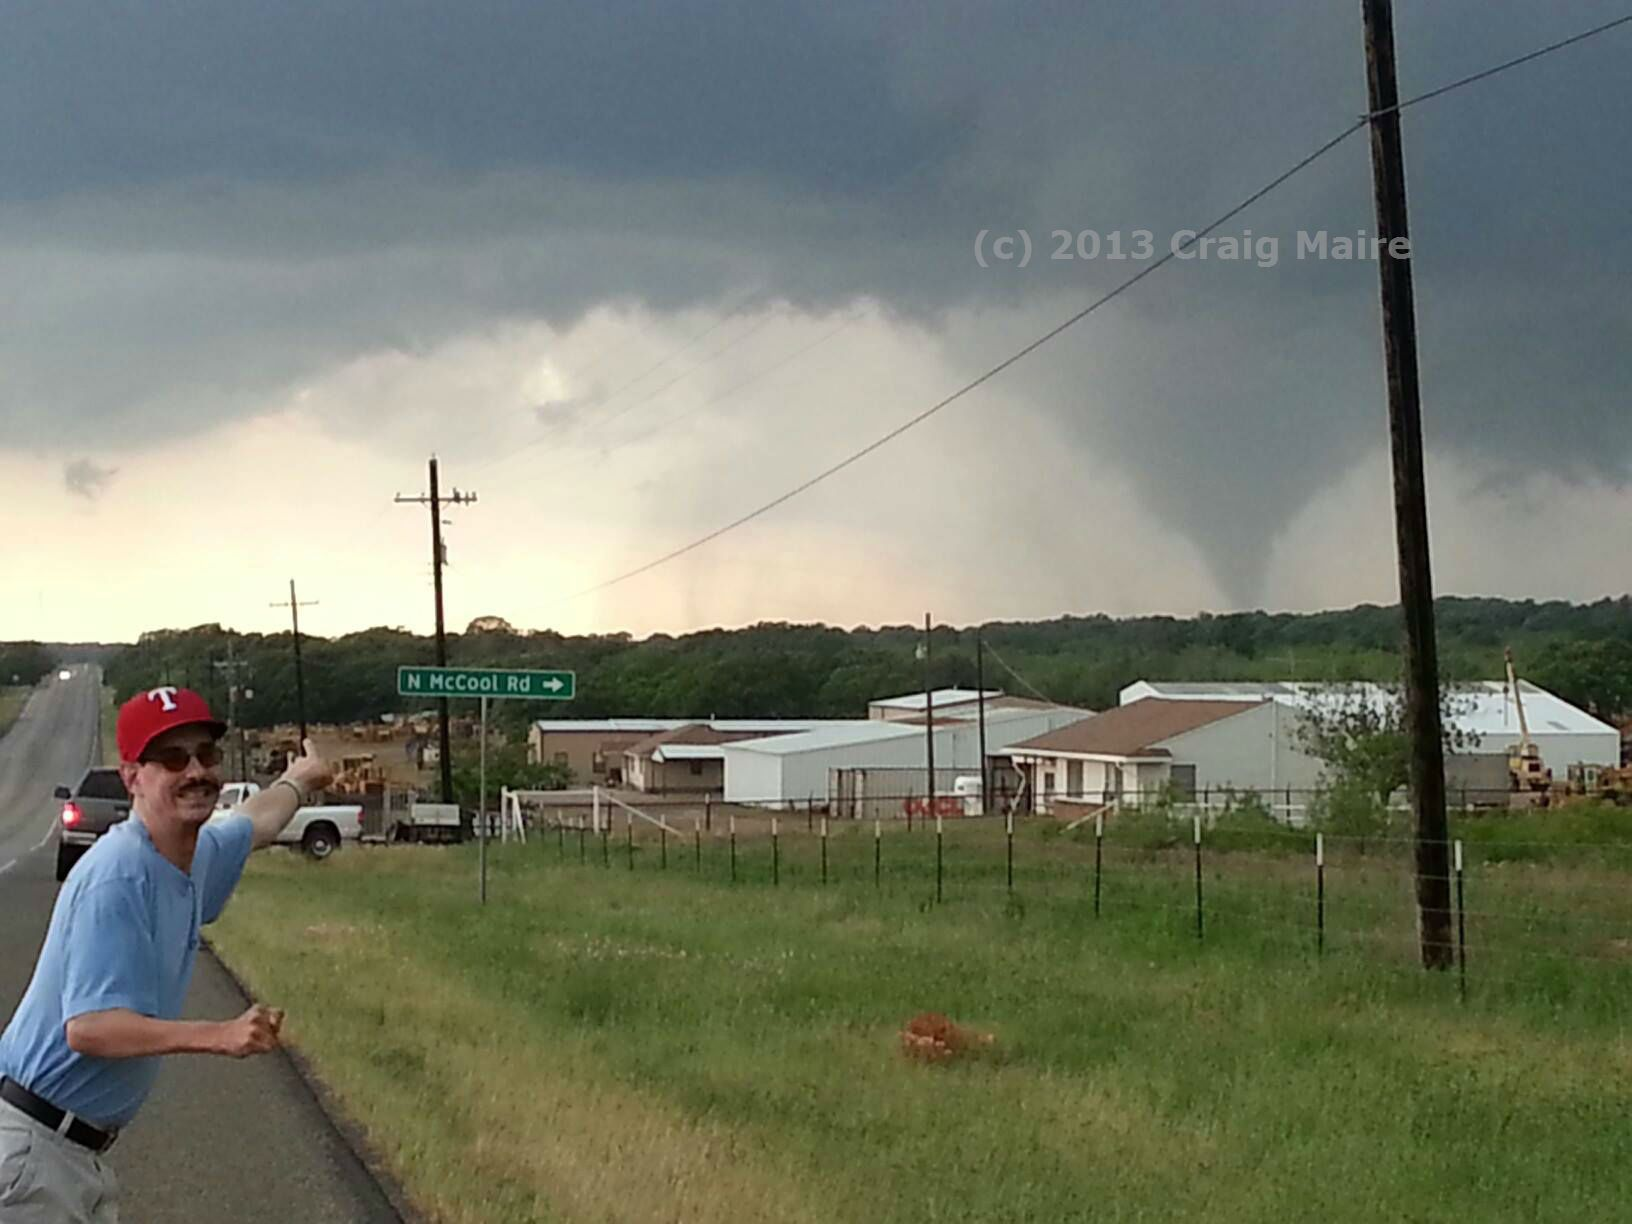 Tornado Near Nocona Tx Tonight 5 15 13 Pic By Craig Maire Severe Weather Tornados Tornado